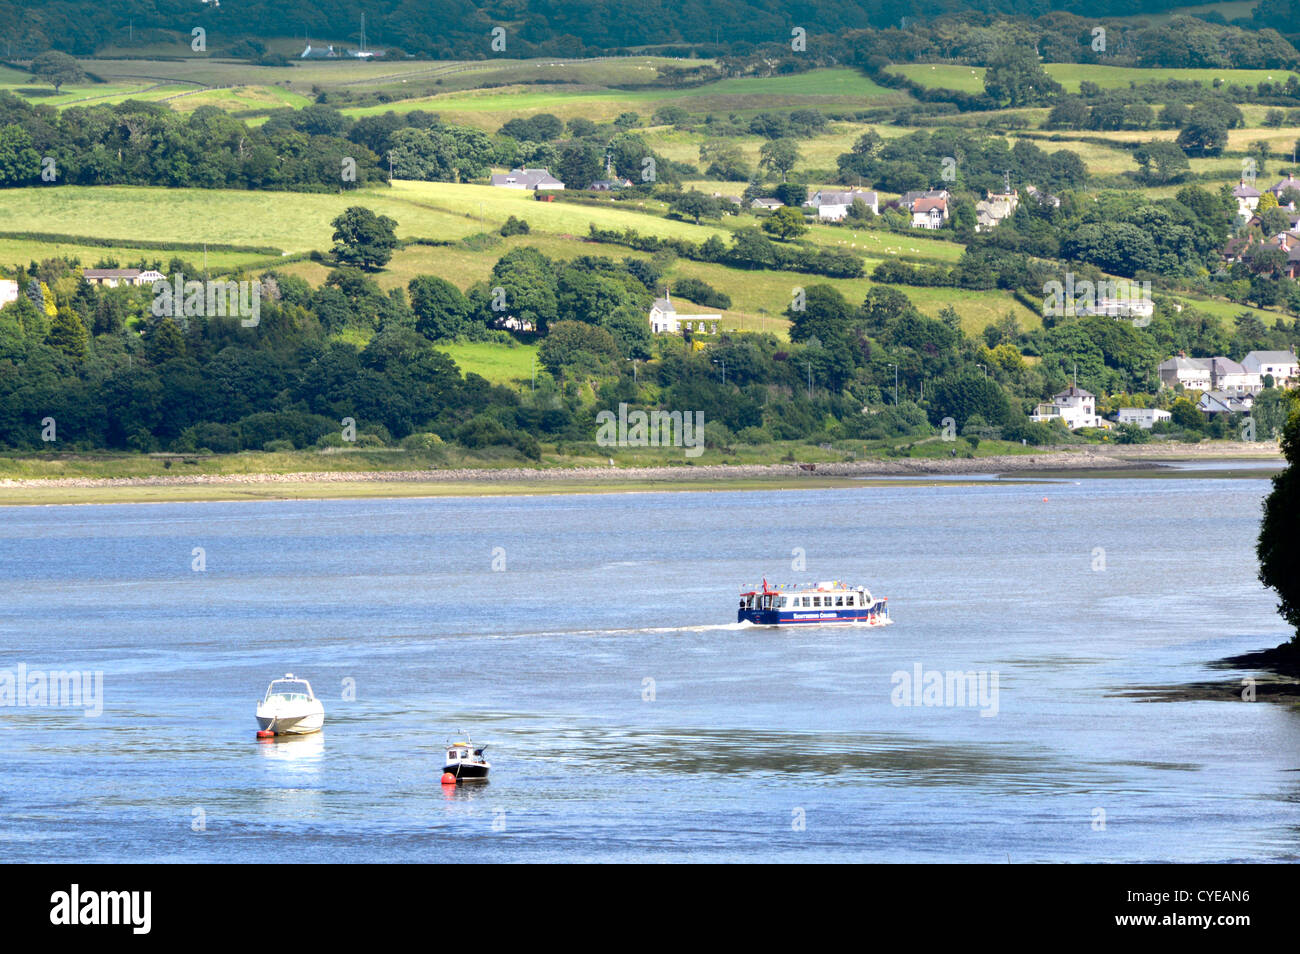 Sightseeing cruise boat heads up the Conwy valley after leaving Conwy quayside Clwyd North Wales UK - Stock Image